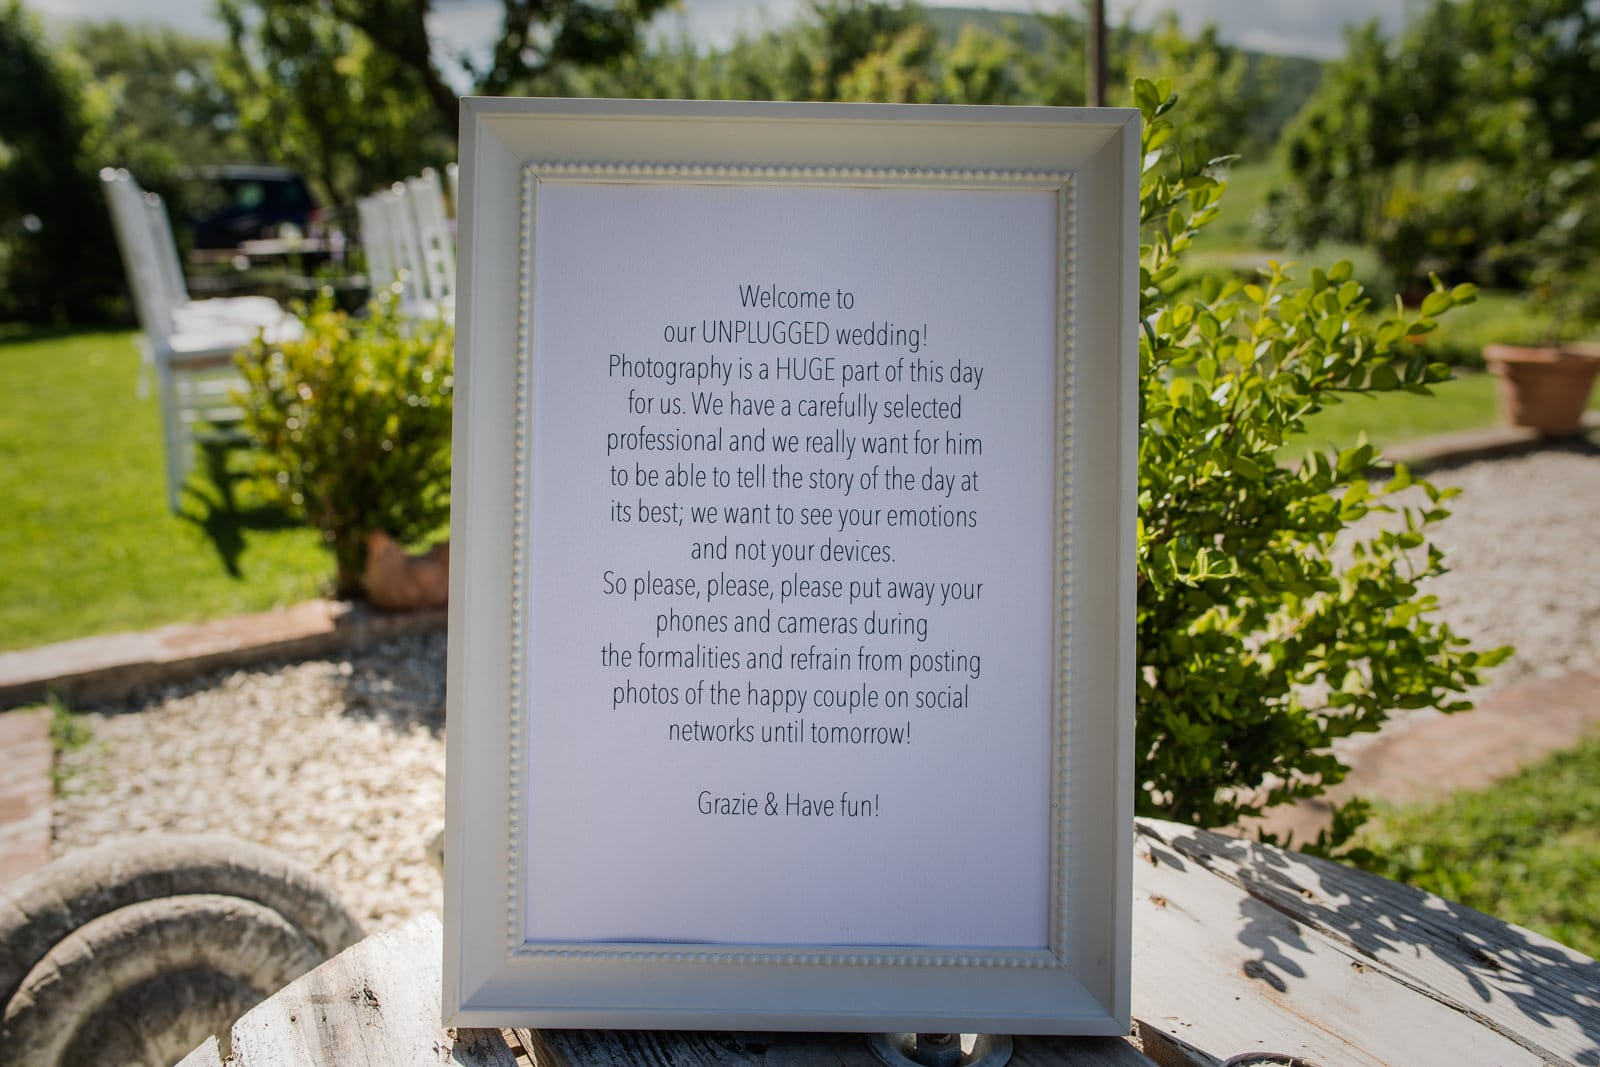 a sign for an unplugged wedding